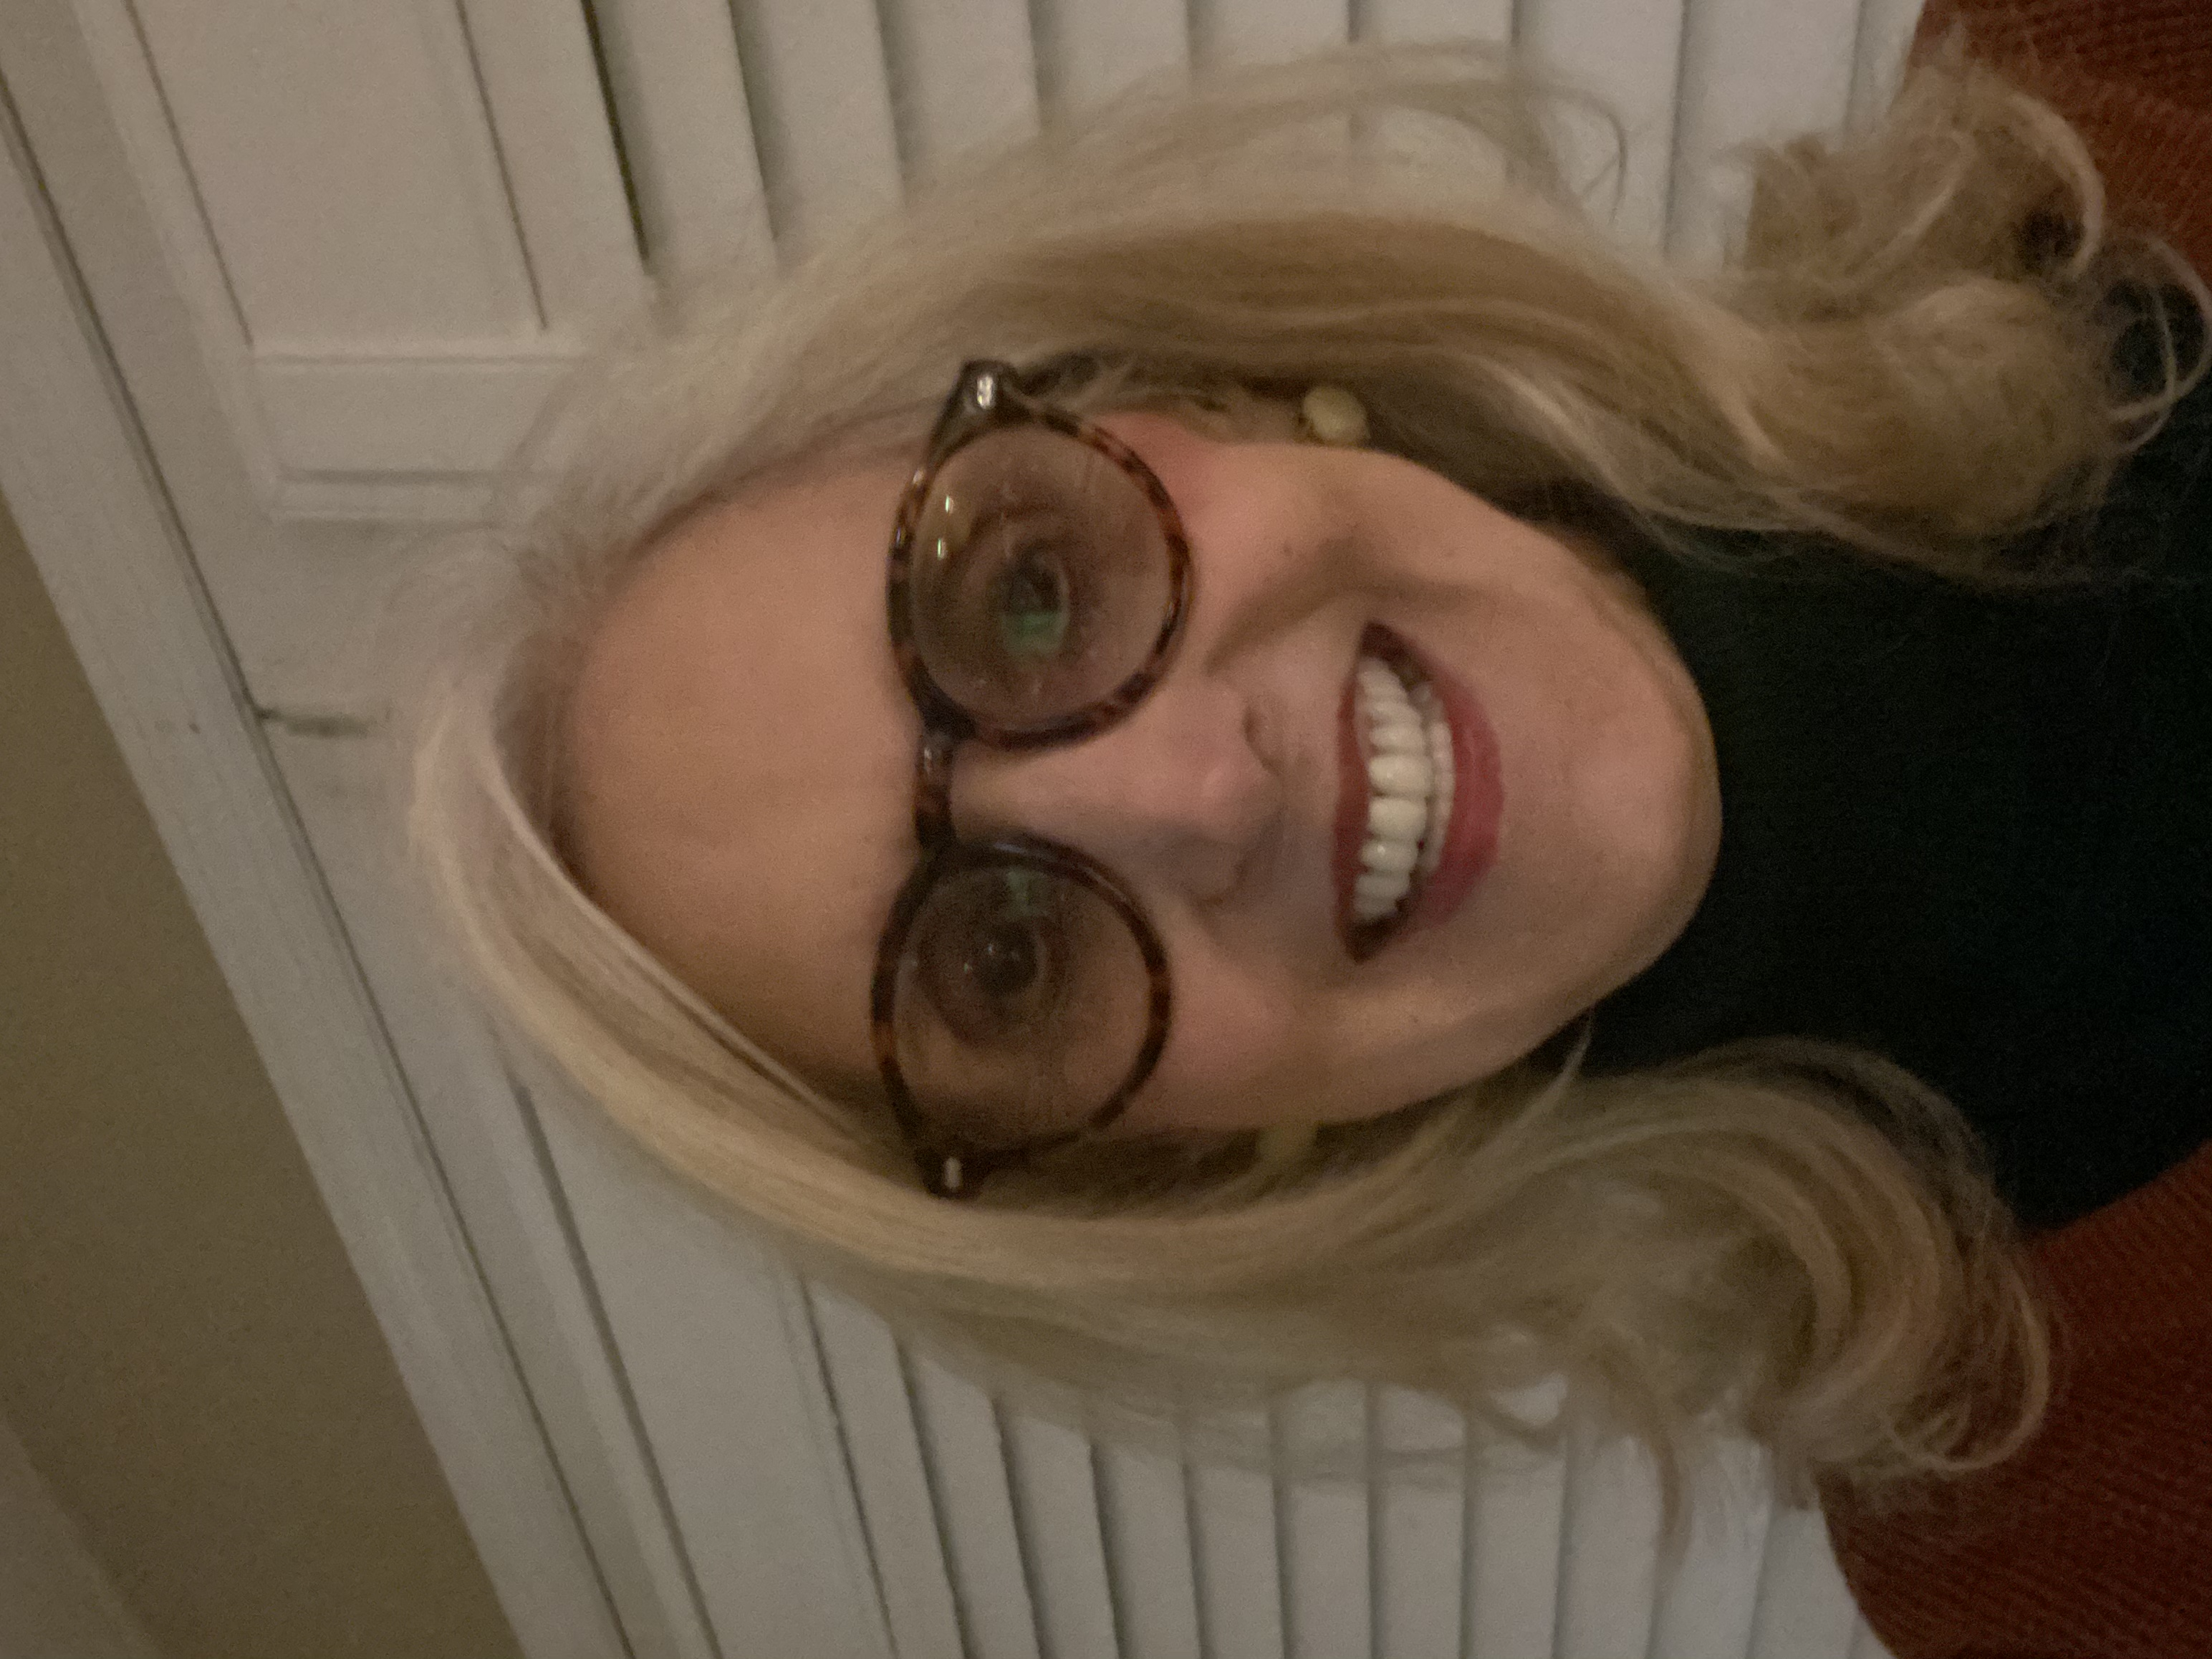 Linda Miles, Marriage and Family Therapist, Psychologist in Tallahassee, FL